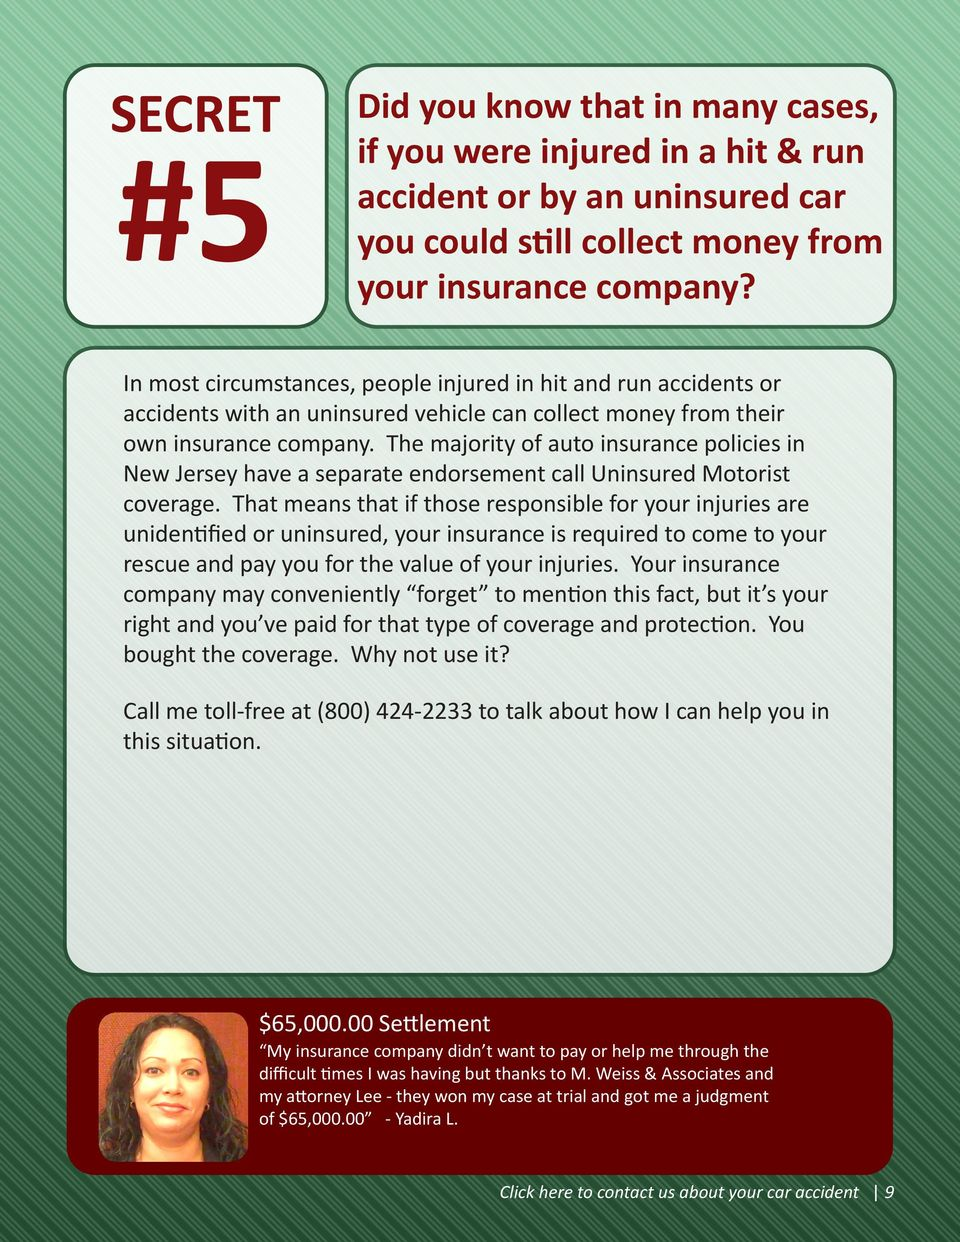 The majority of auto insurance policies in New Jersey have a separate endorsement call Uninsured Motorist coverage.